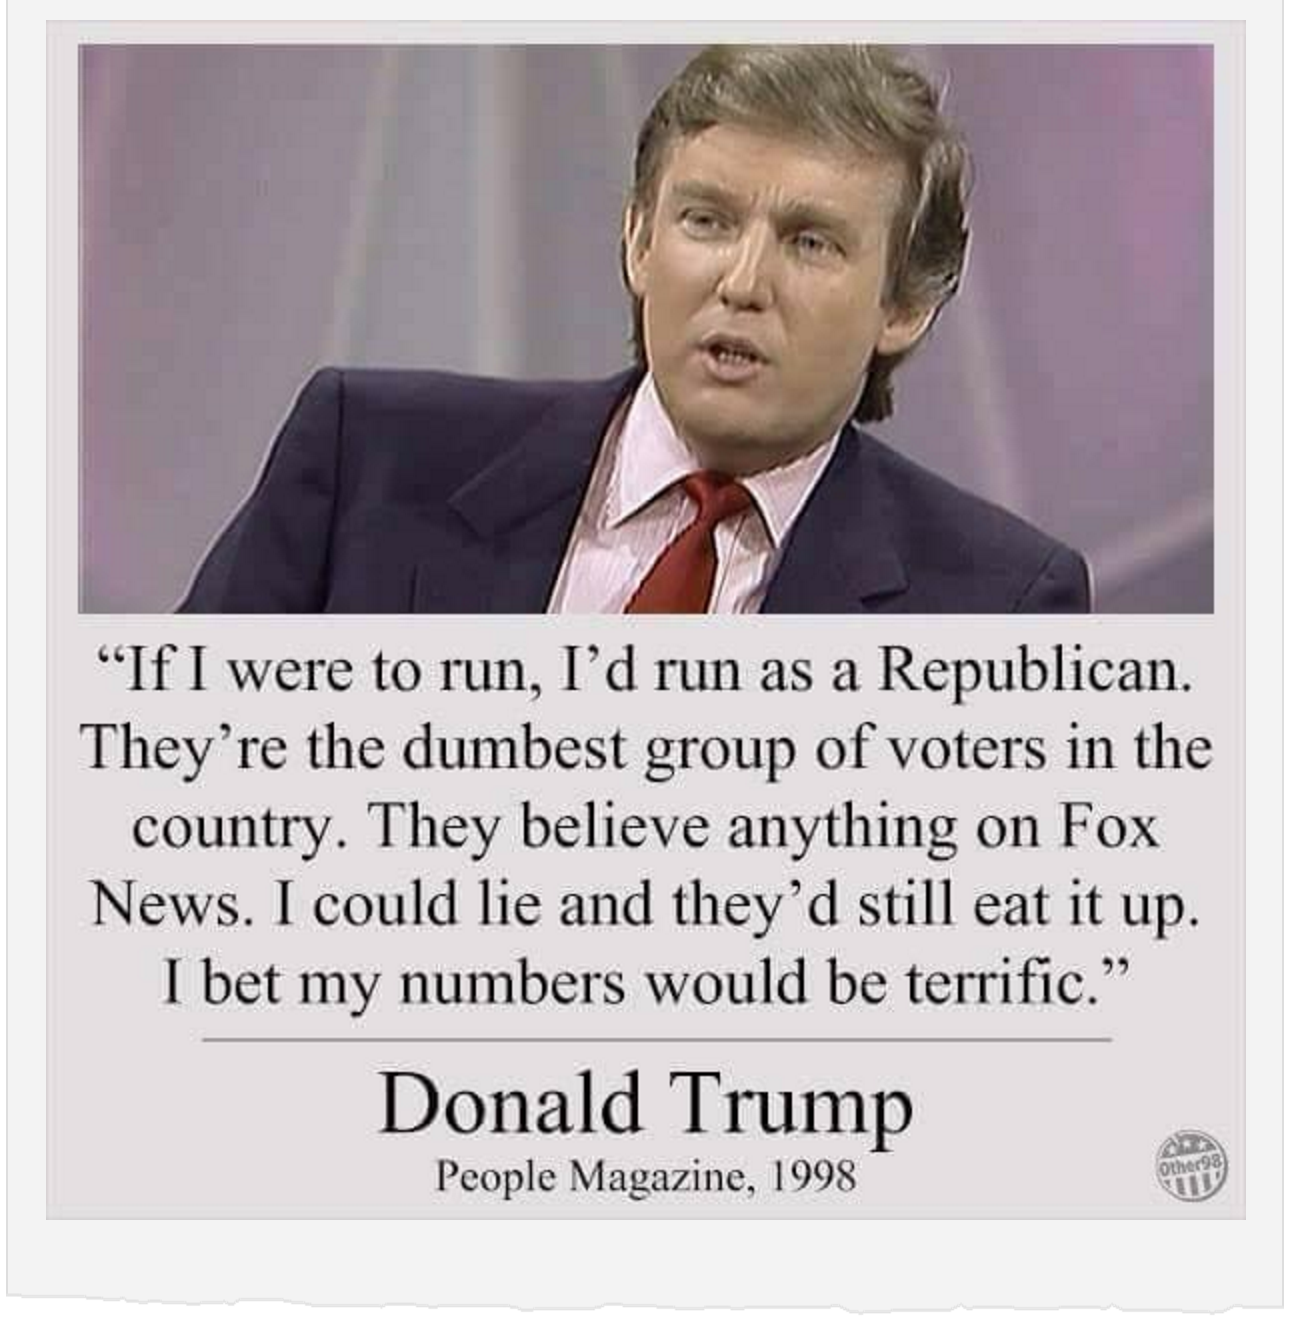 You Elected a Con Man, Trump Supporters, You've been Had.